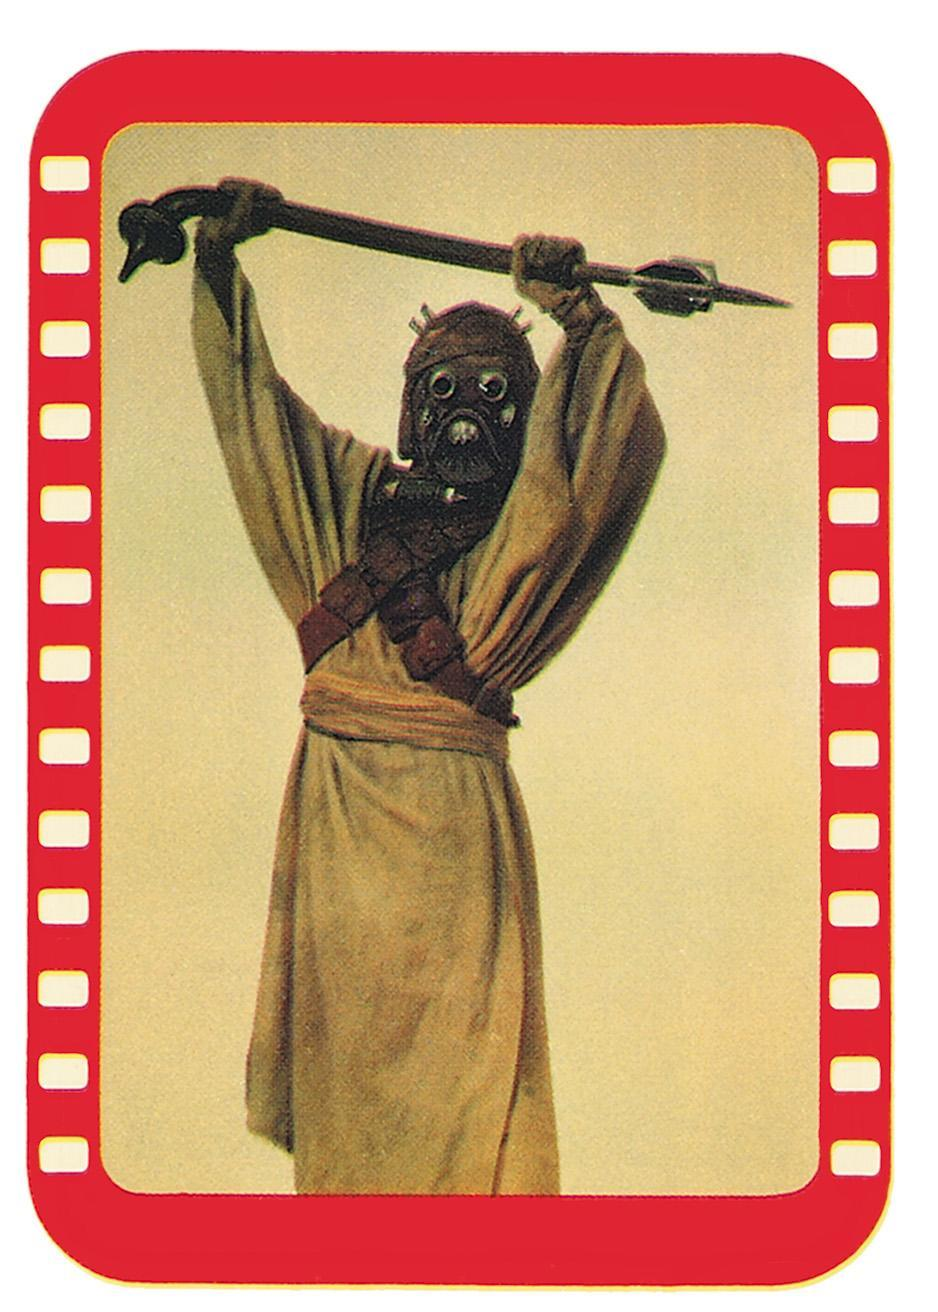 """<p>This fearsome gaffi stick-wielding Tusken Raider (originally named """"Sand People"""" in press materials of the day) re-creates a scene from the movie. (Credit: The Topps Company and Lucasfilm Ltd (C) Abrams Books) </p>"""